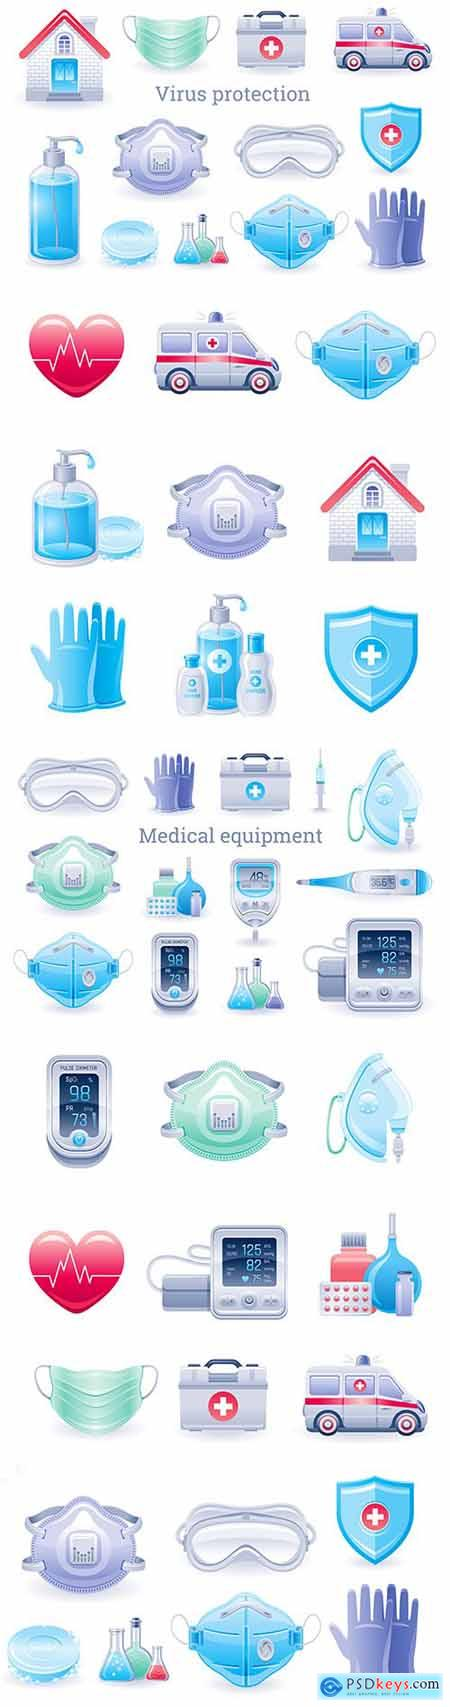 Virus protection and prevention kit medical equipment